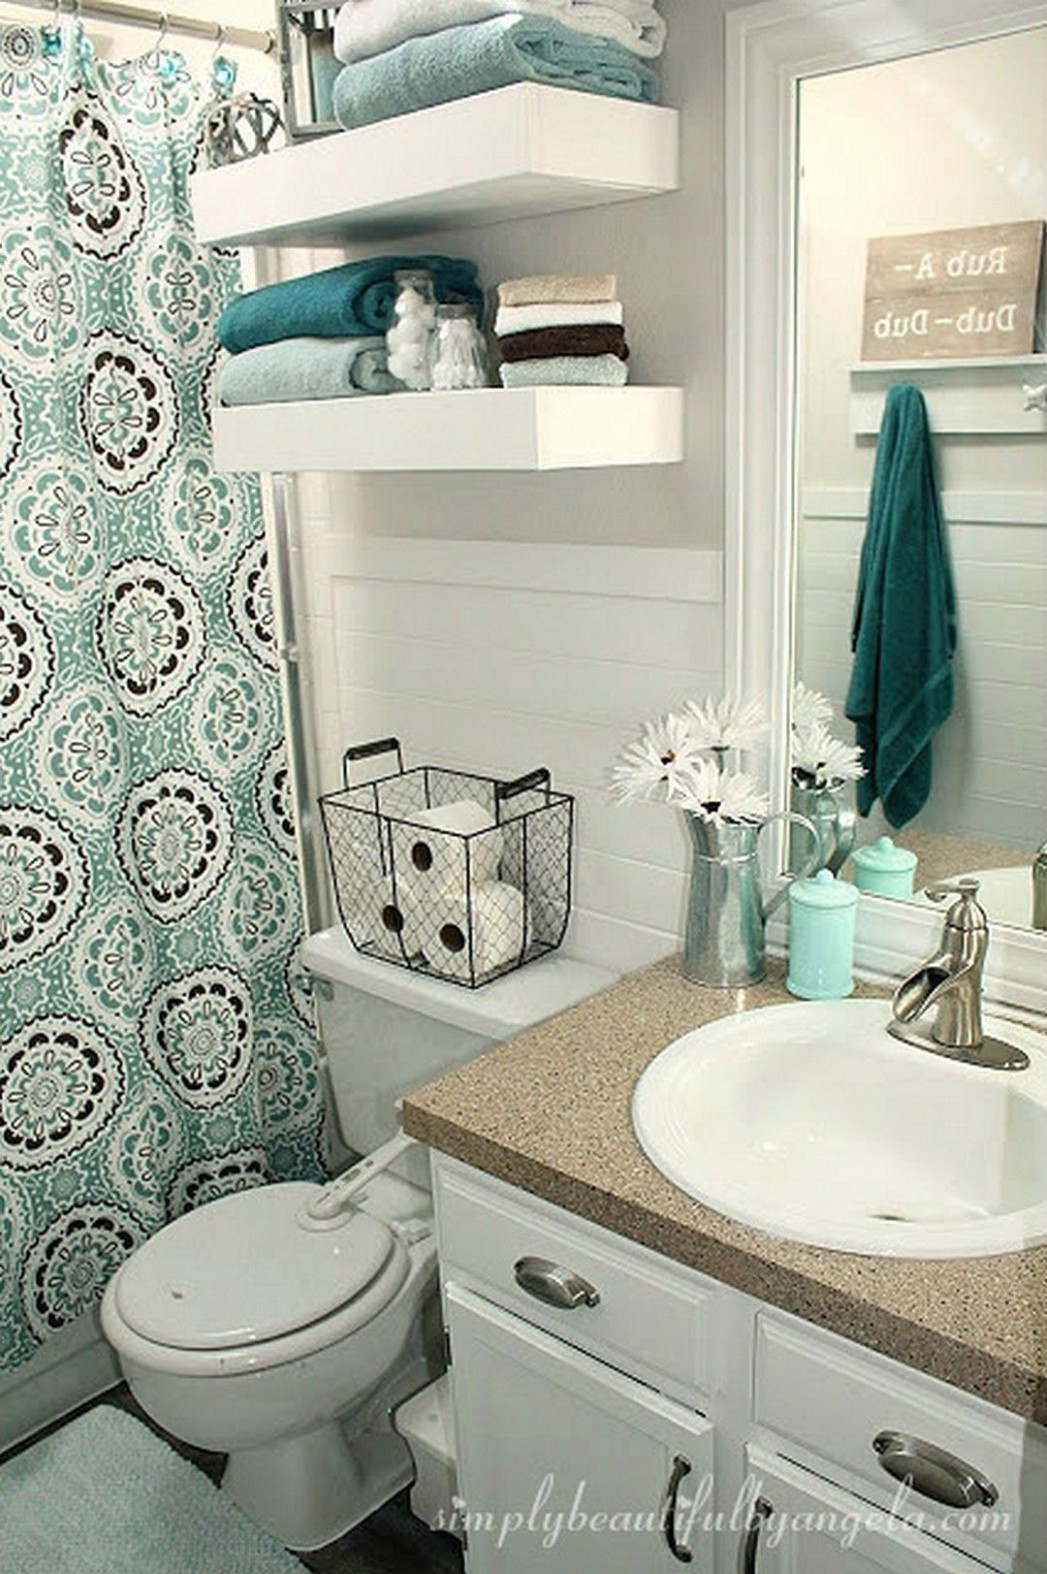 Cozy Small Apartment Decorating Ideas On A Budget - Decomagz  - Apartment Bathroom Decorating Ideas On A Budget